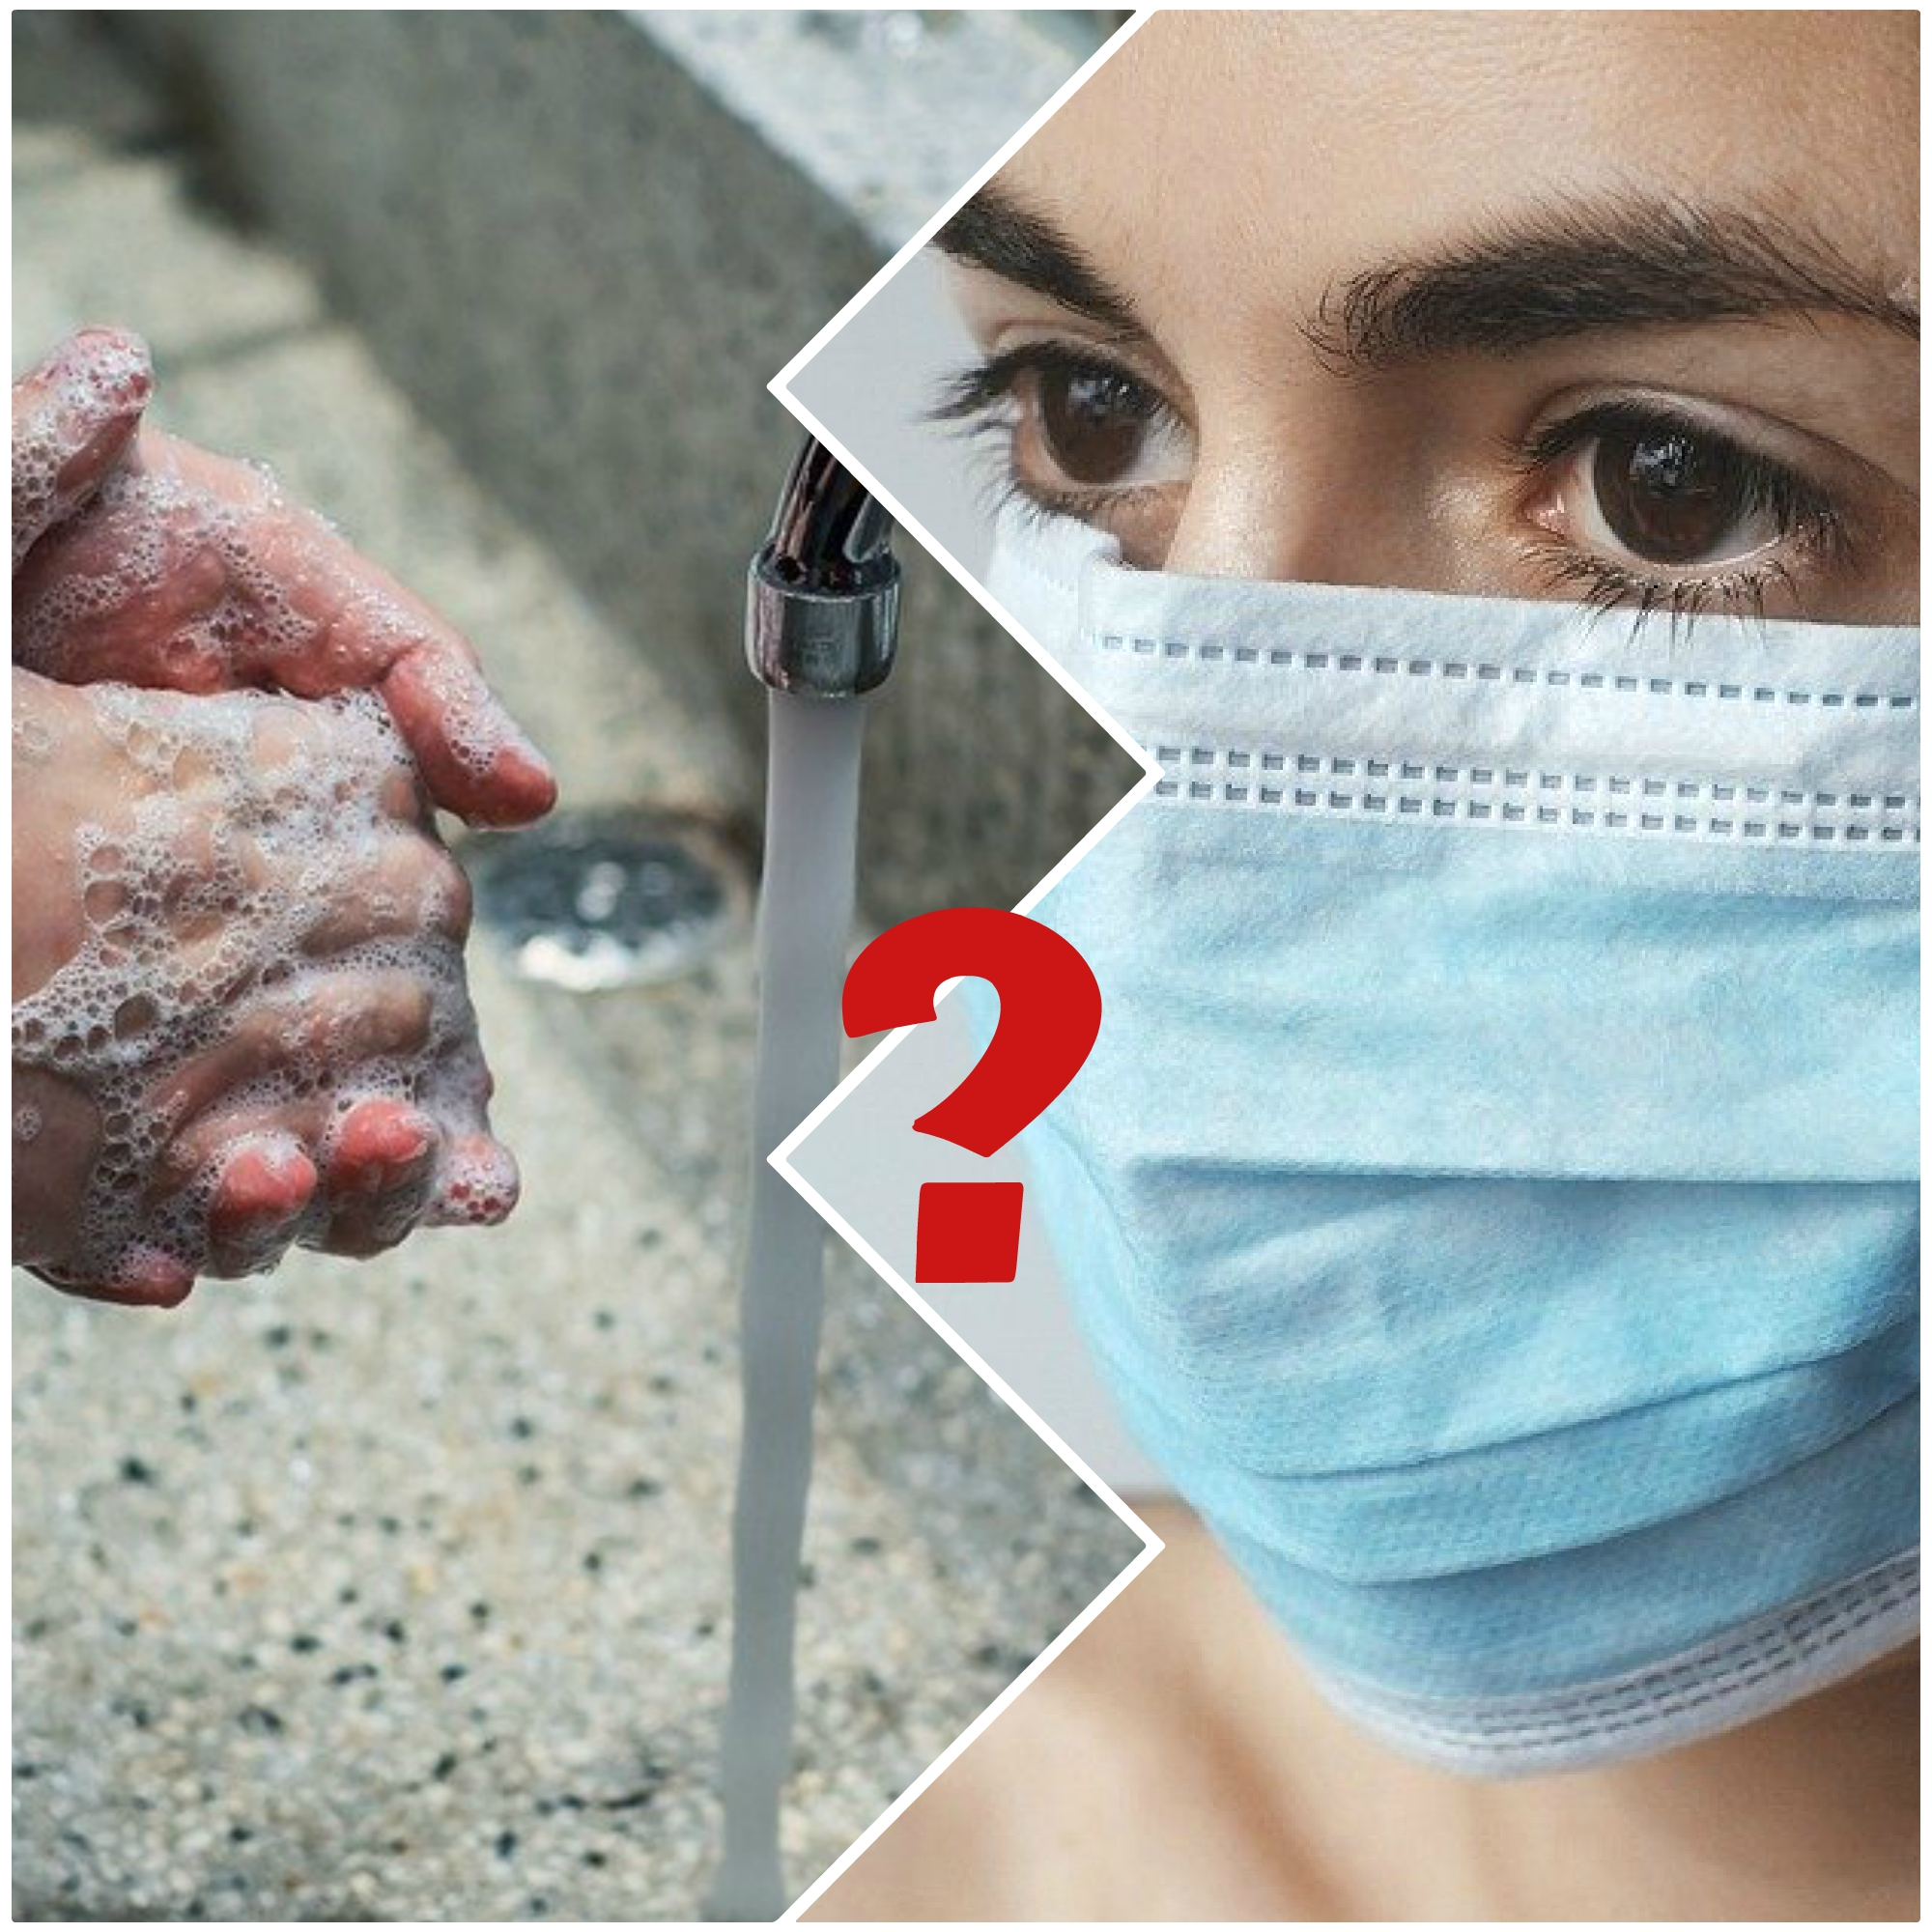 Face Masks: Do We Need A Federal Mandate?  Are They Effective?